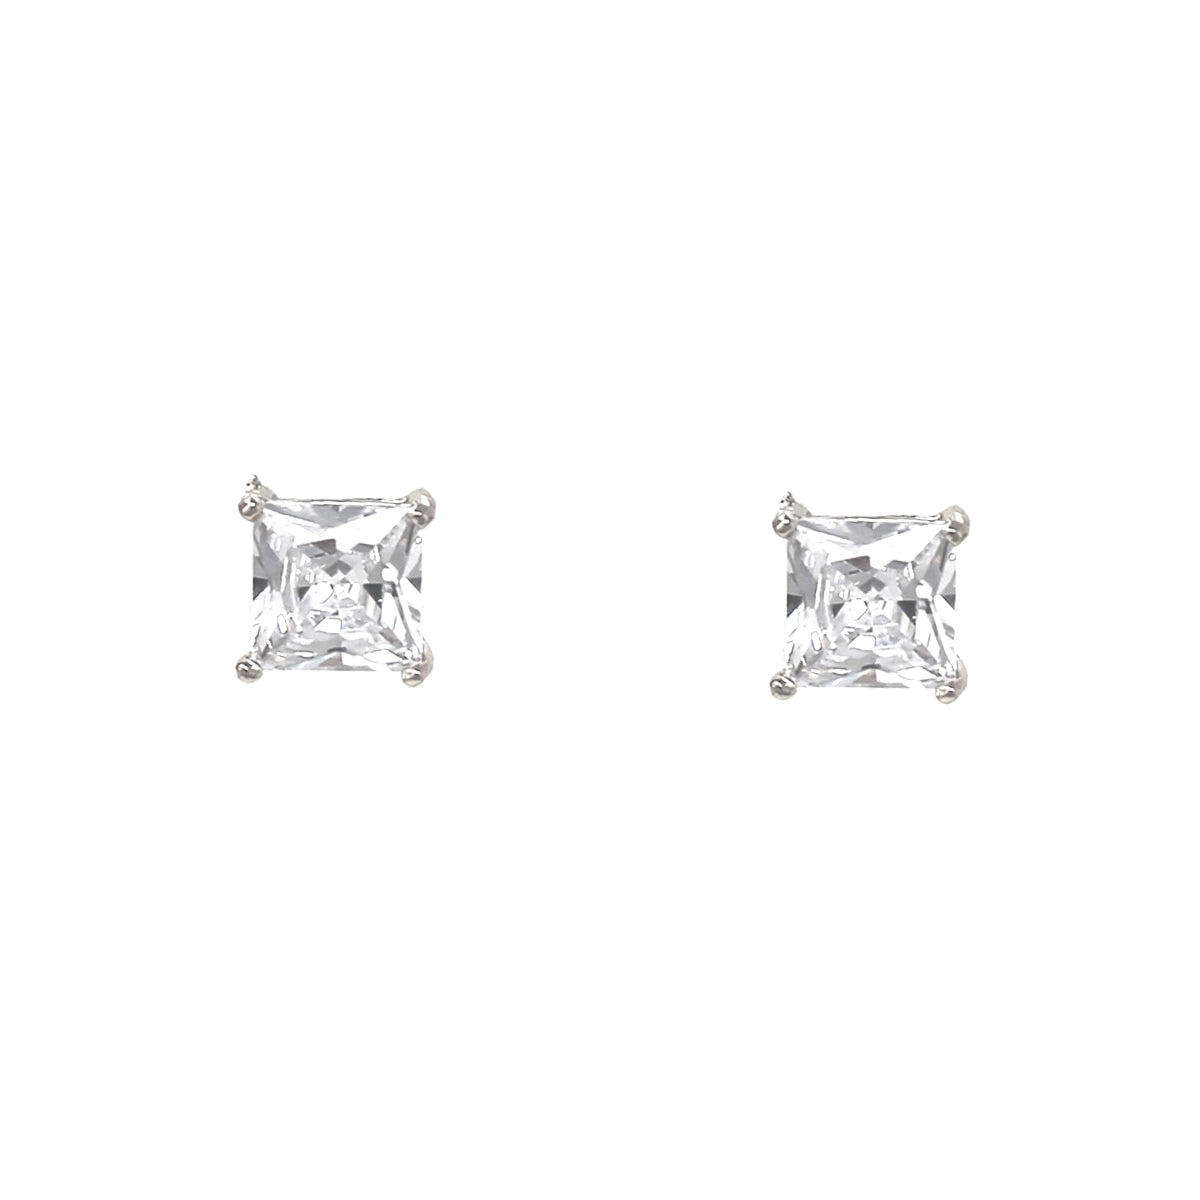 Square Cubic Zirconia Stud Earrings (9 mm)